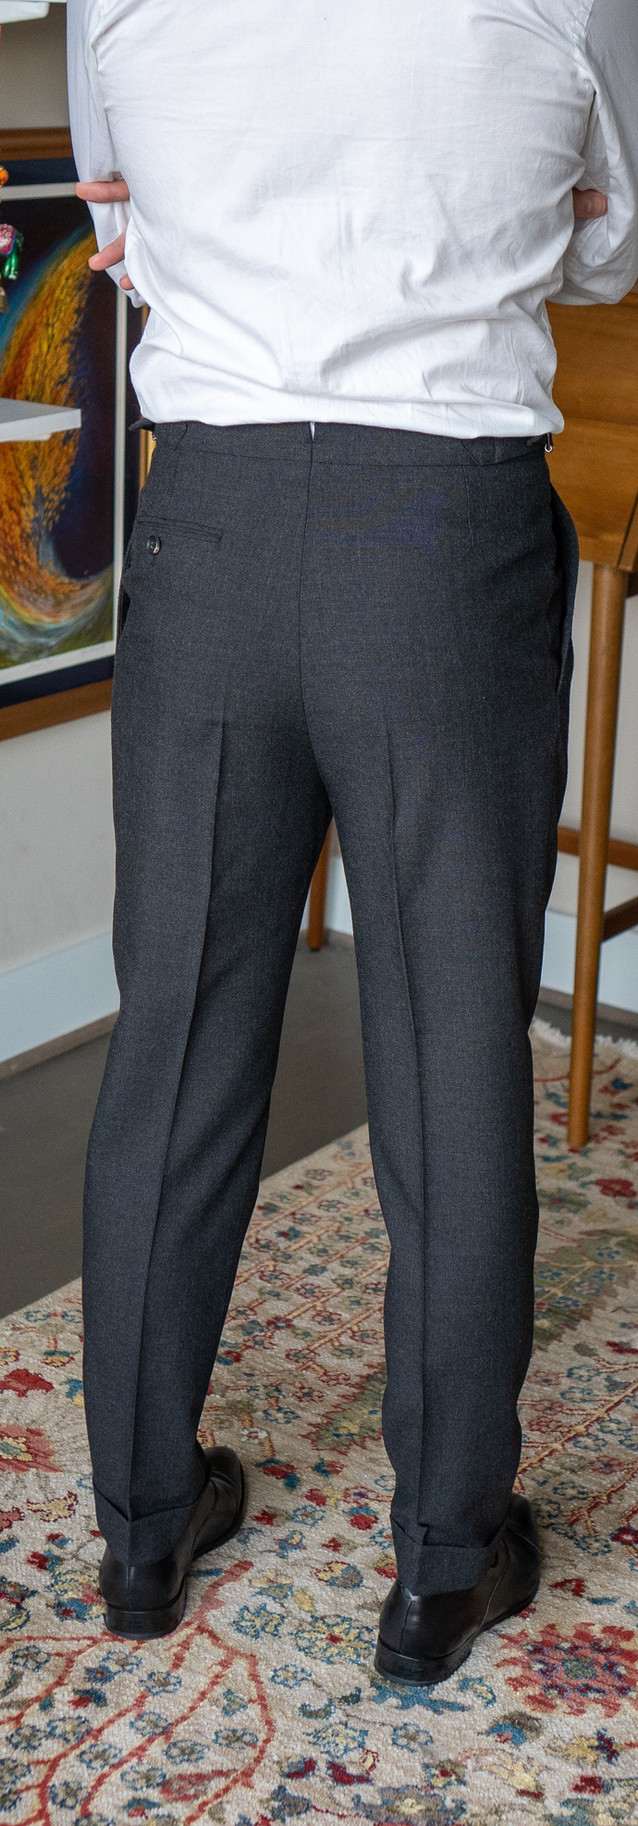 Full-length rear view of Anglo-Italian double-pleated trousers